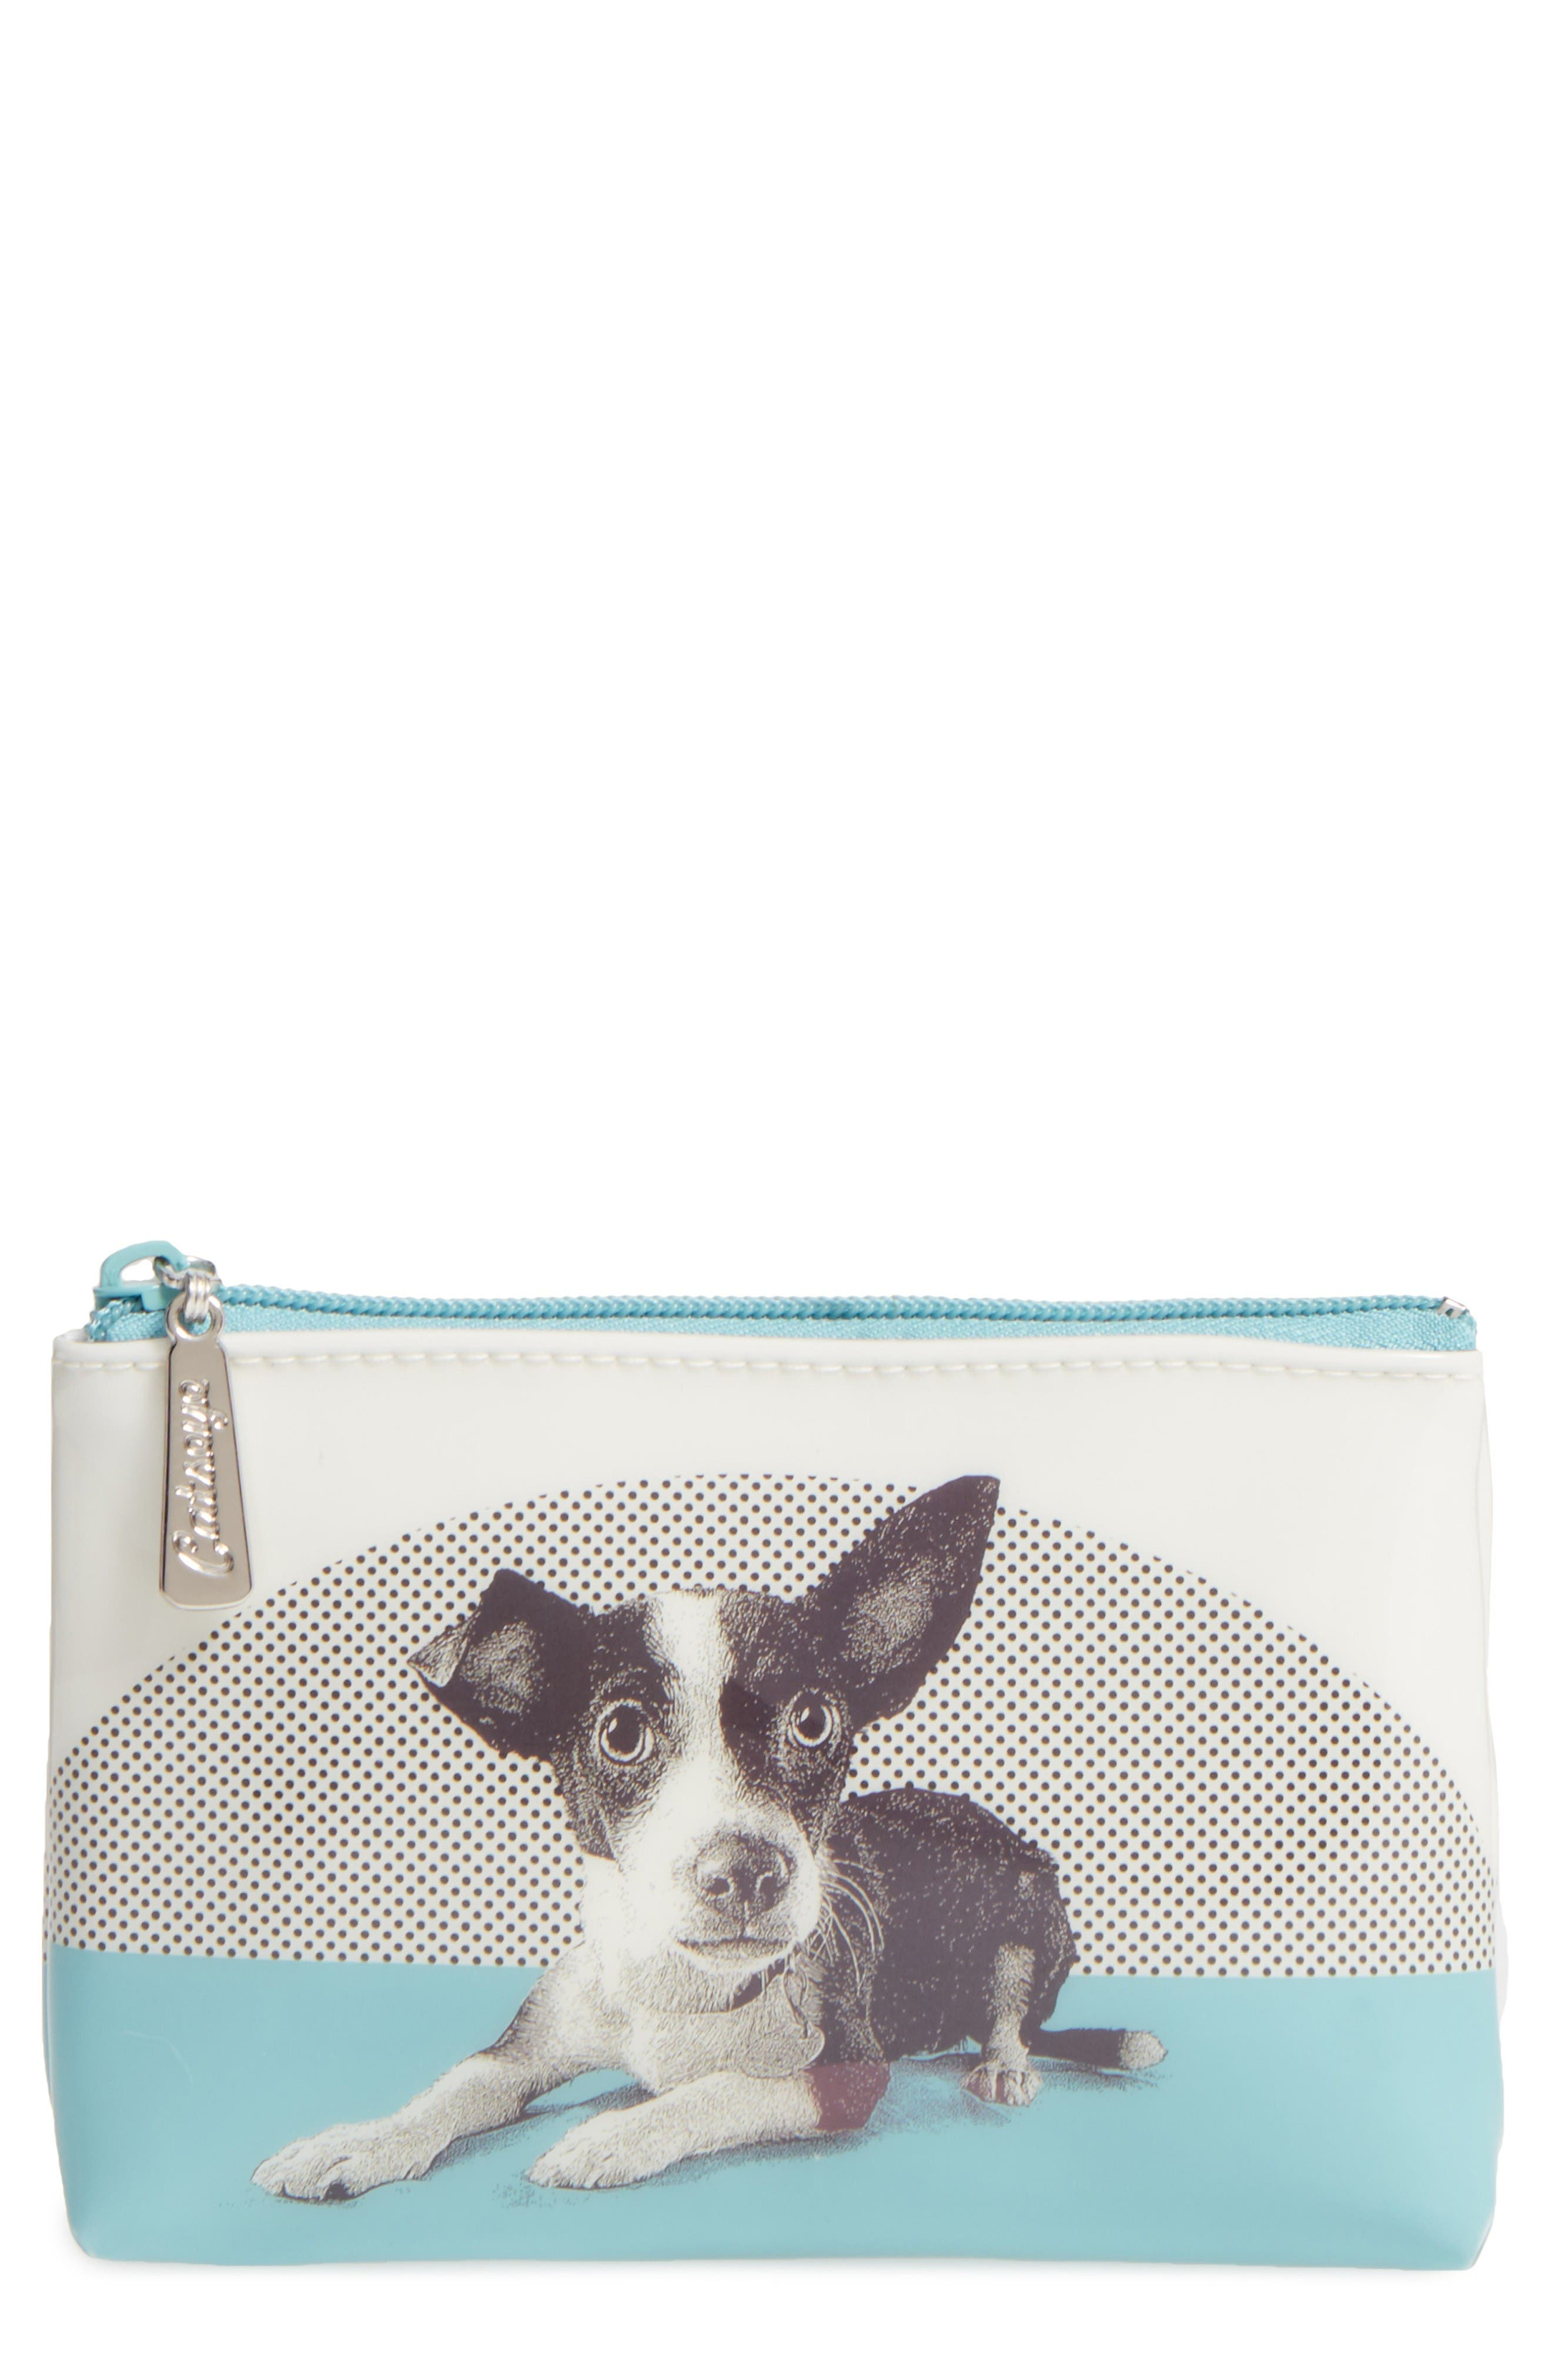 CATSEYE LONDON Etched Dog Small Zip Pouch